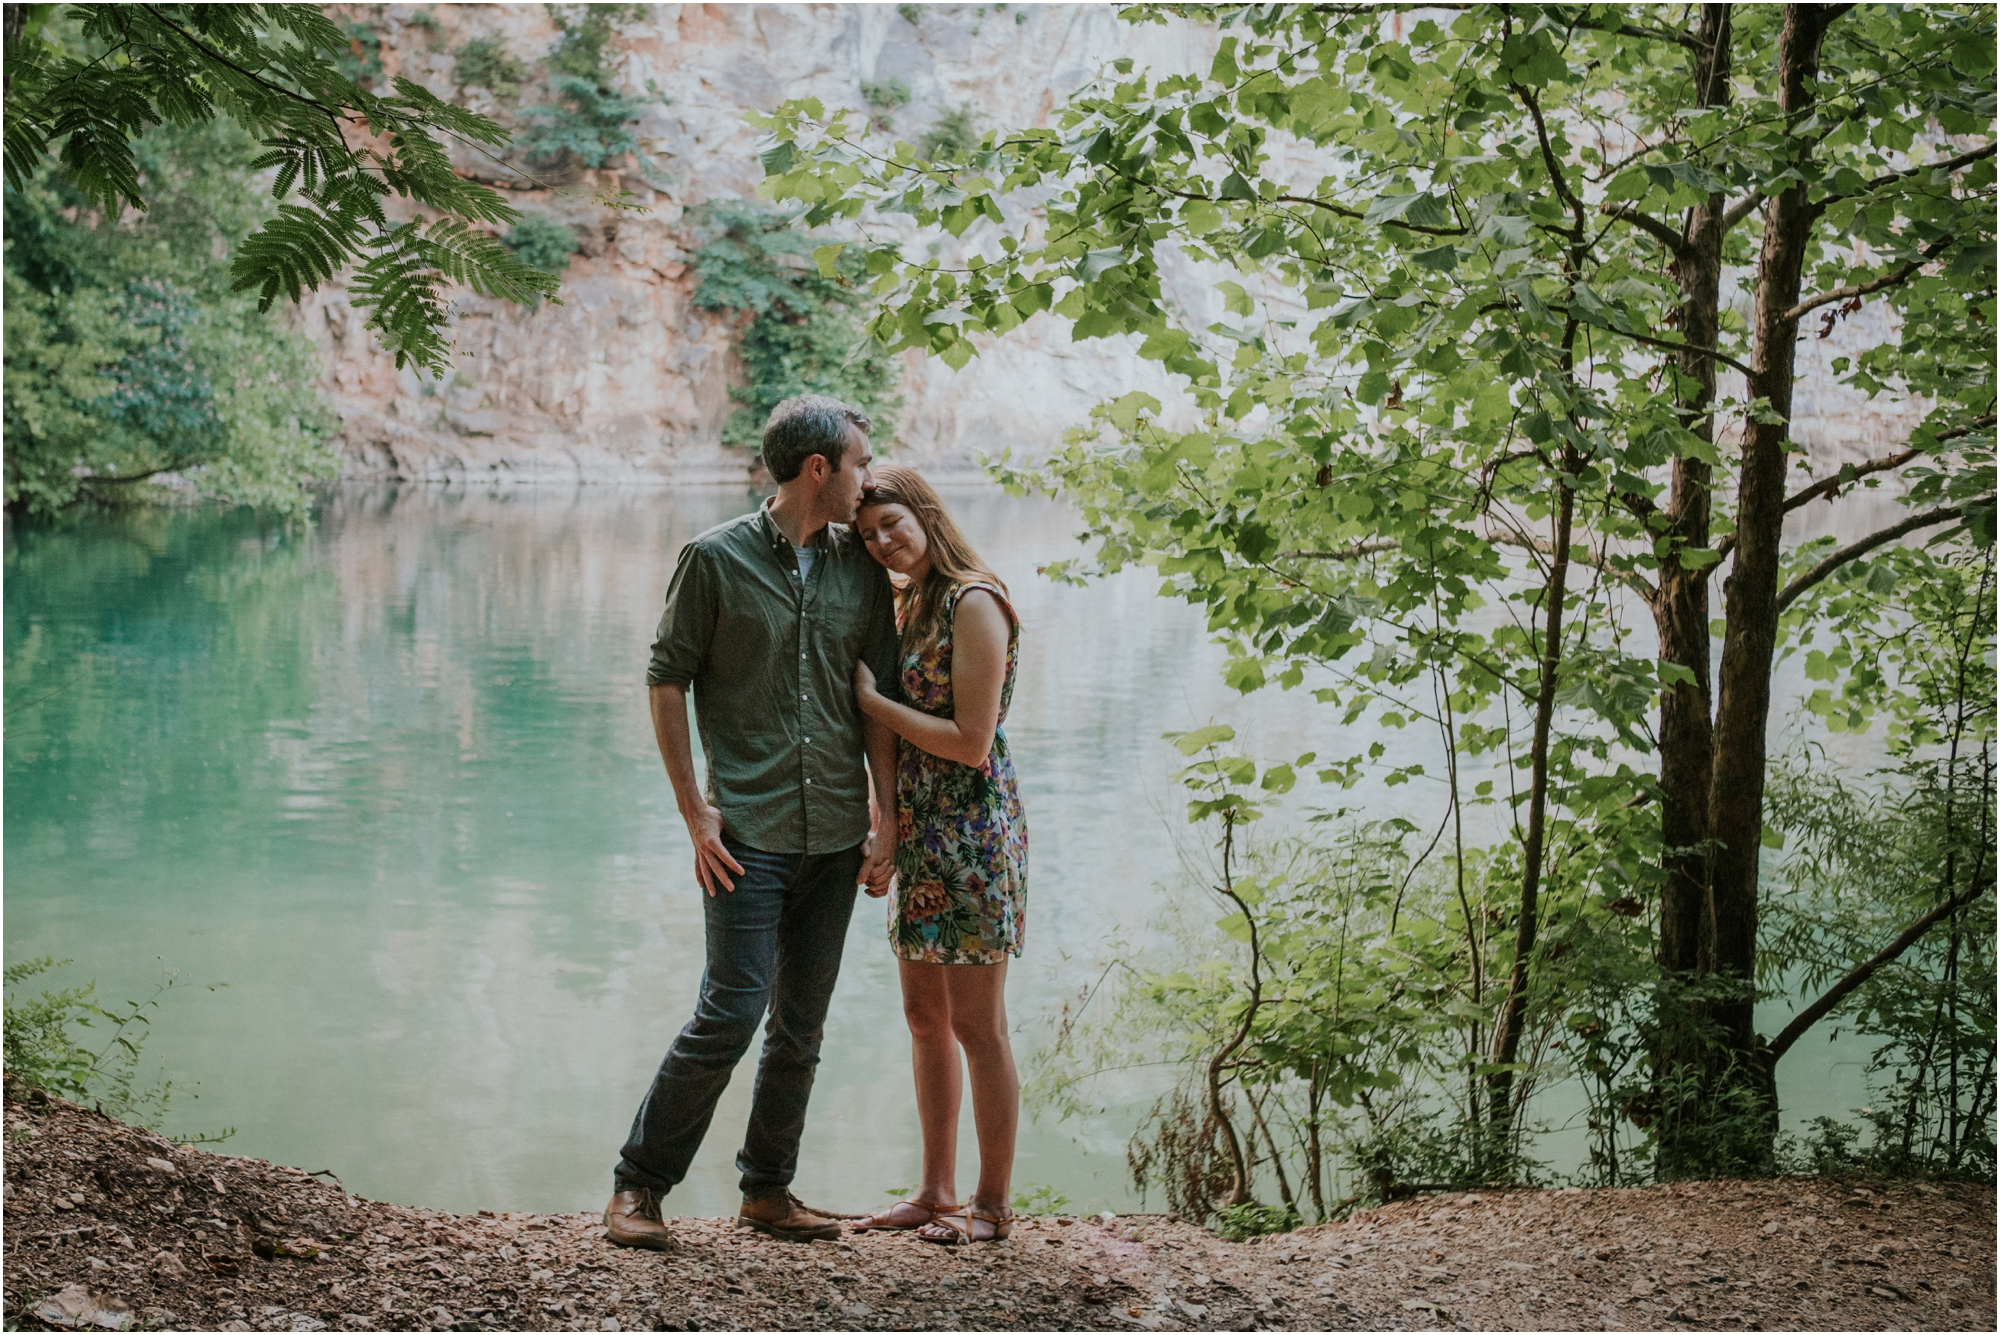 meads-quarry-ijams-nature-center-knoxville-tennessee-engagement-session-summer-northeast-tn-adventurous-outdoors-lake-katy-sergent_0025.jpg